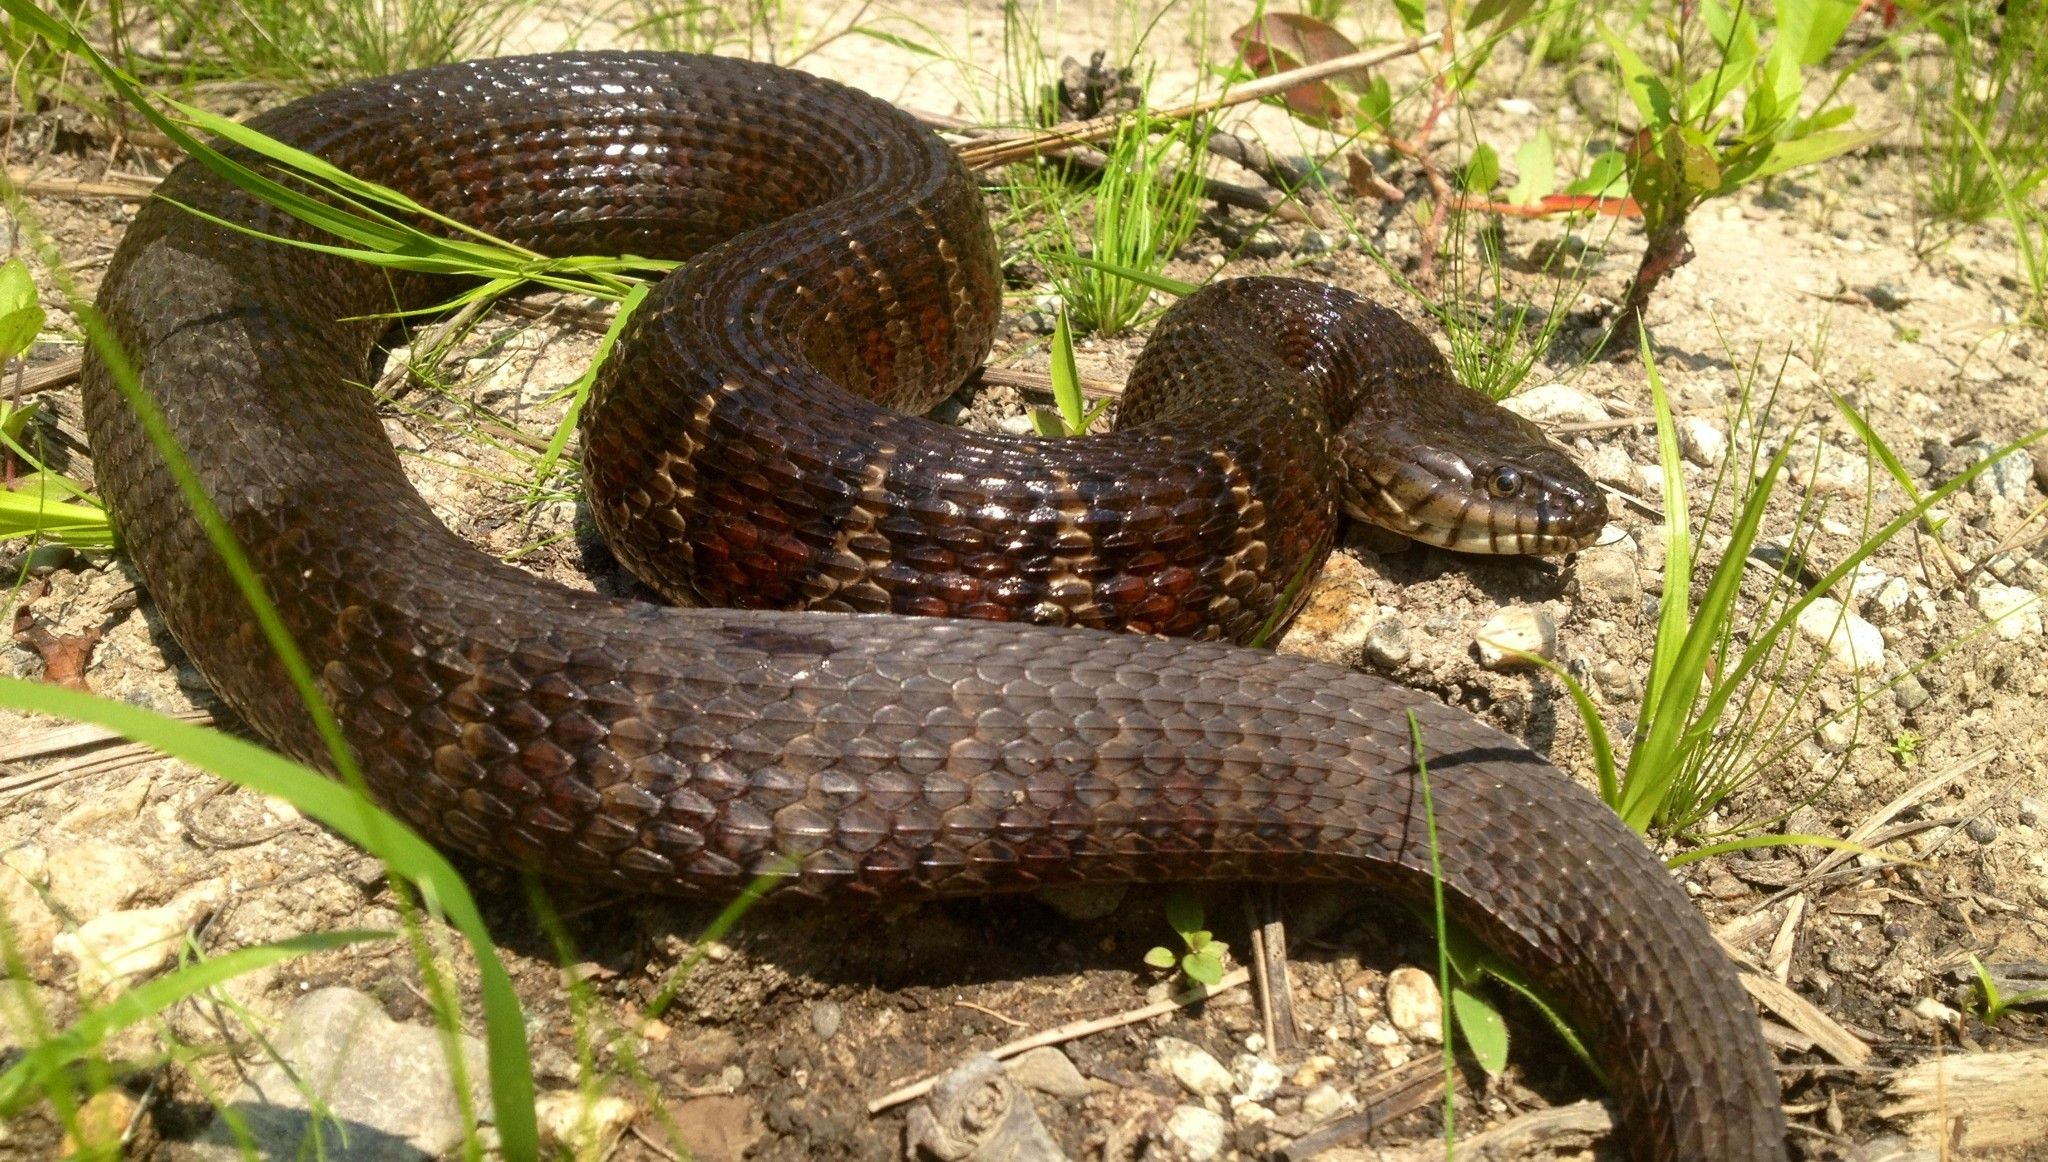 water snakes invading california threaten native species keeping